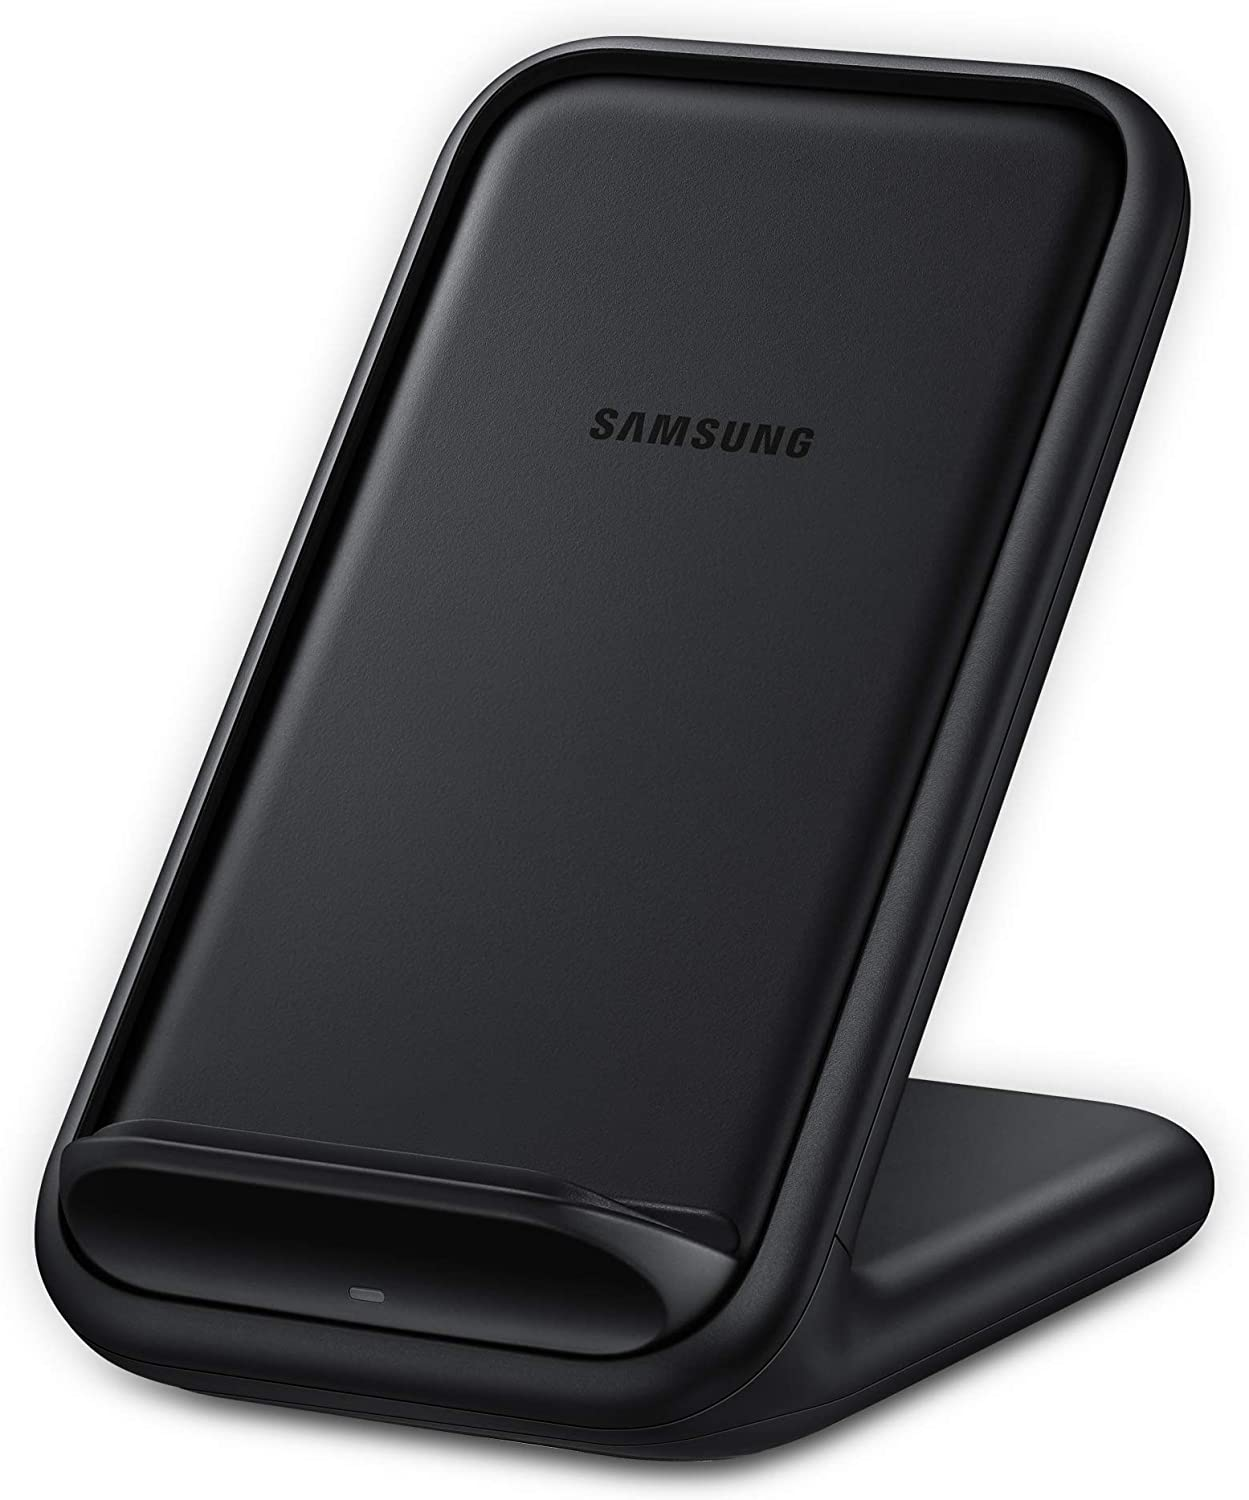 Samsung 15W Fast Charge 2.0 Wireless Charger Stand